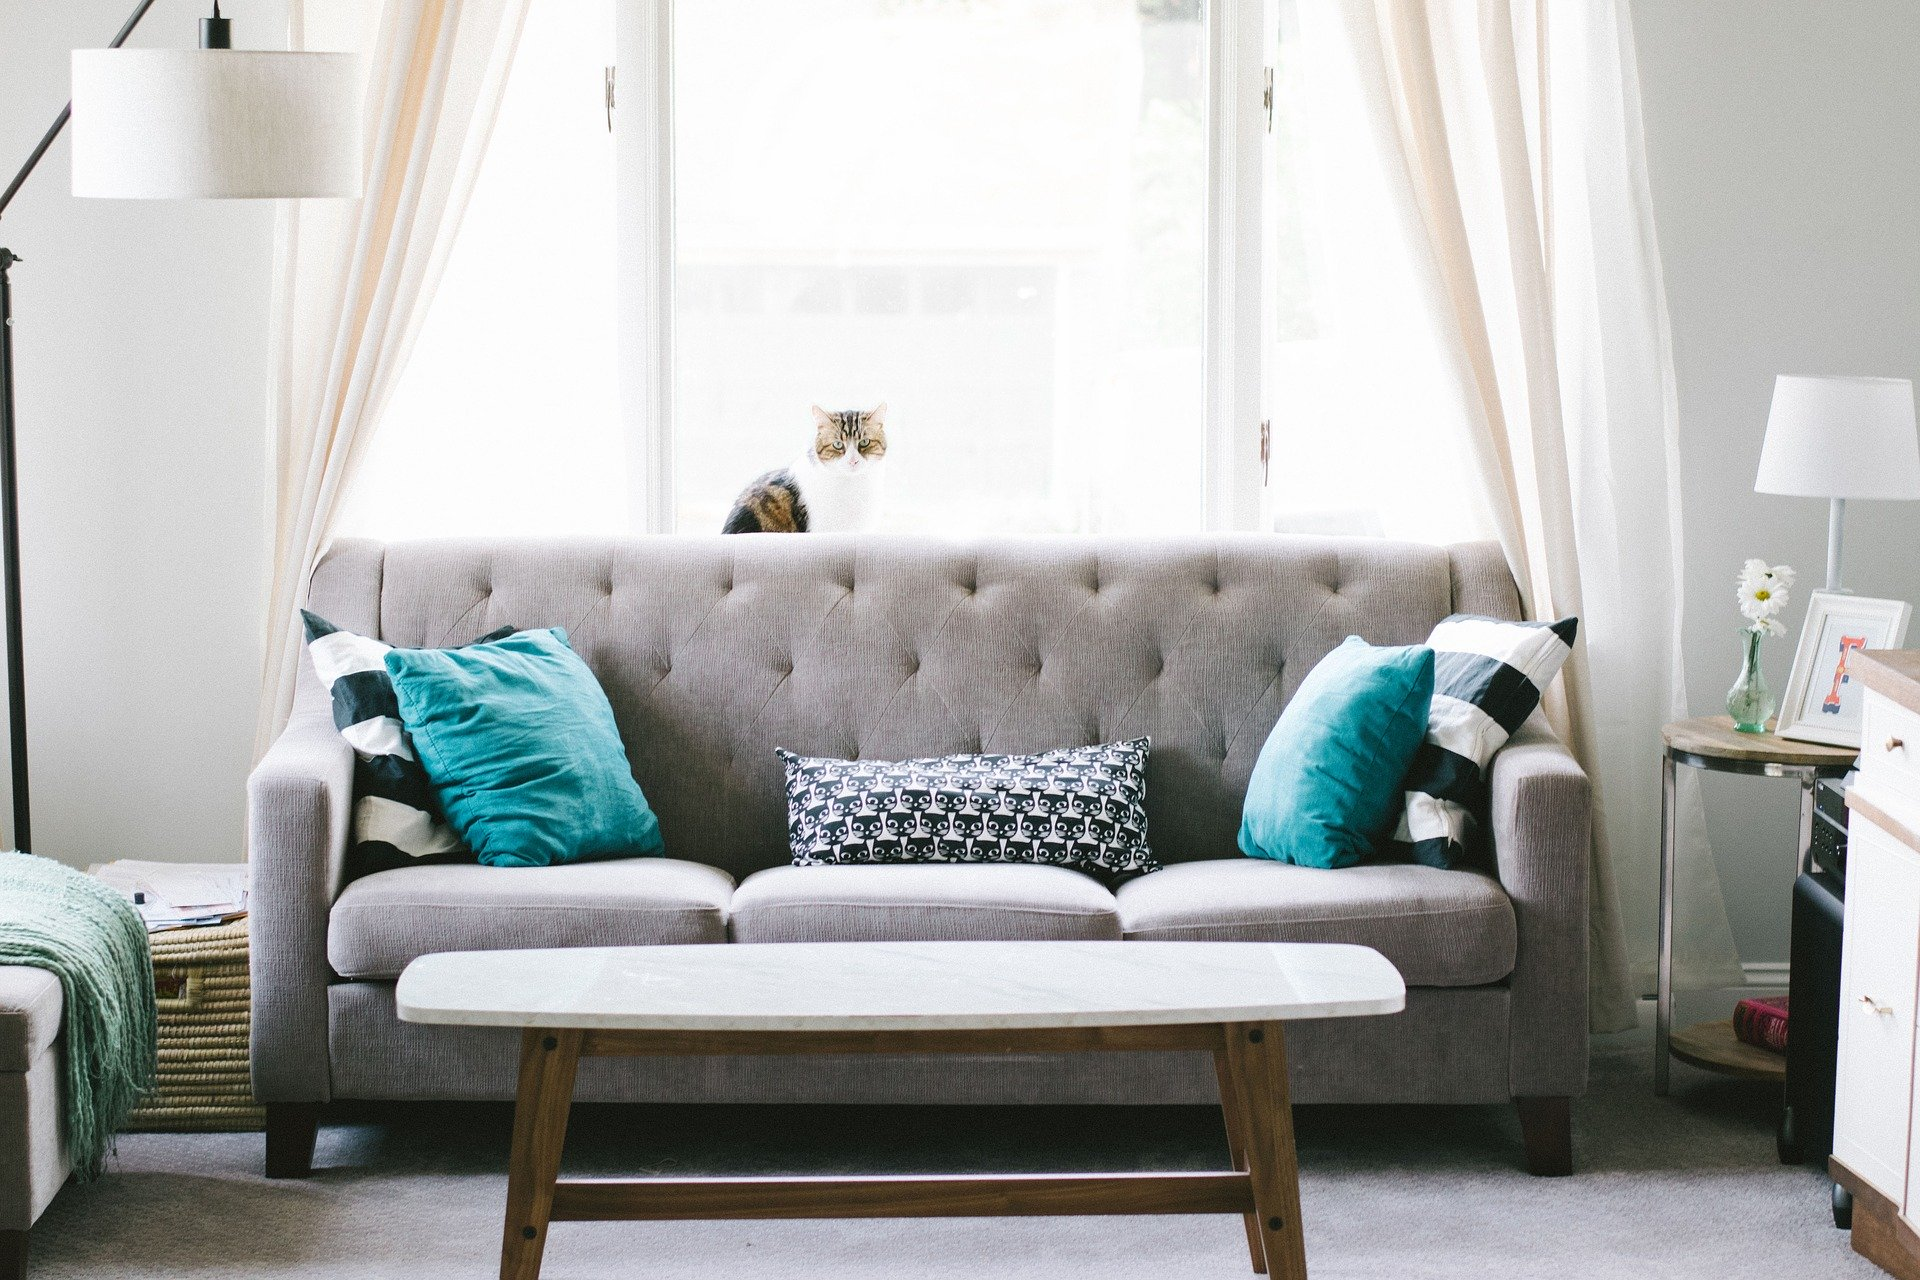 4 Simple Tricks To Make Your Living Room More Inviting